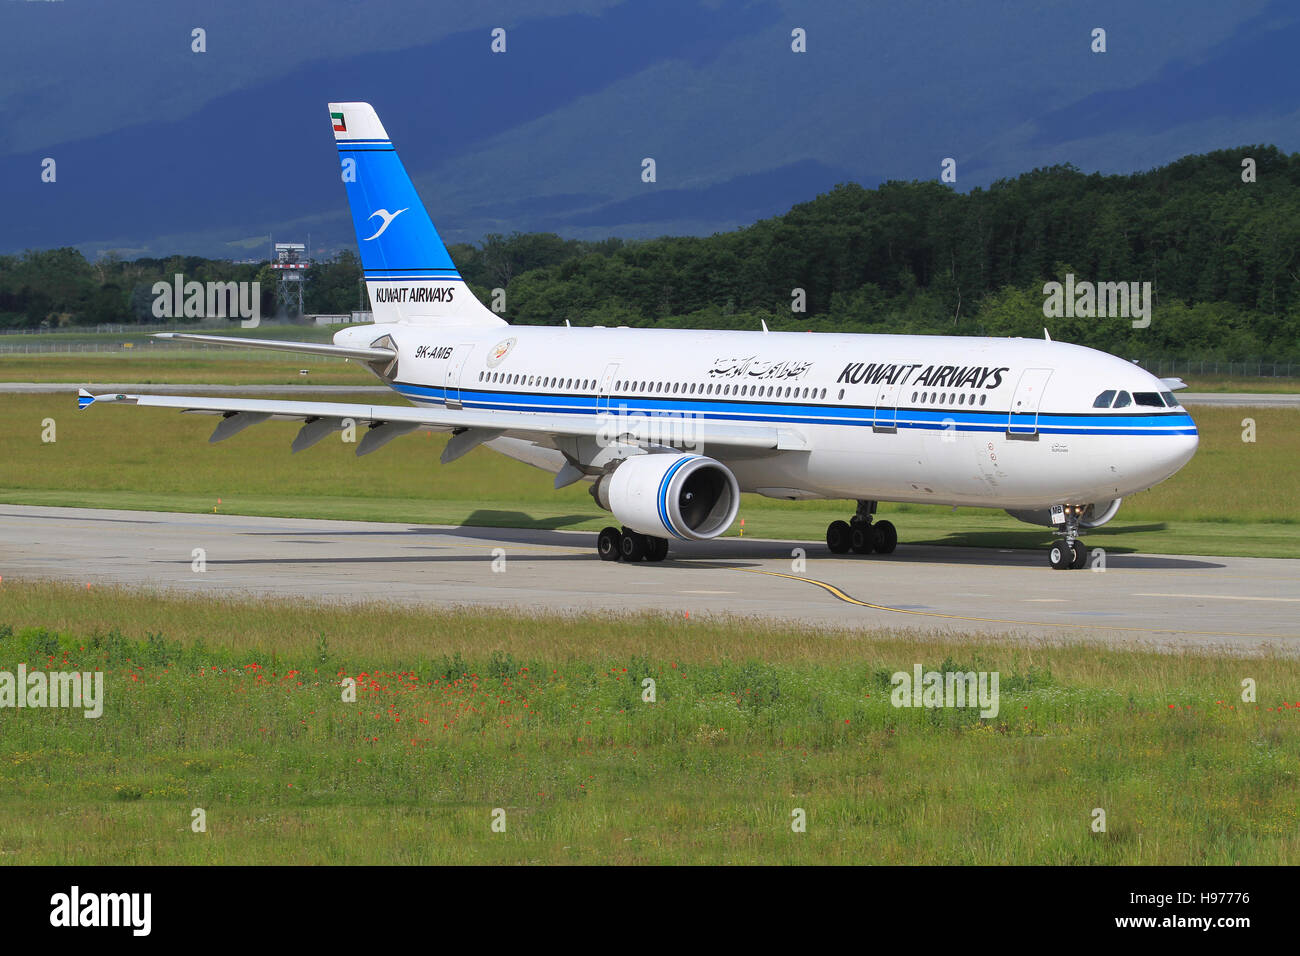 Genf/Switzerland August 5, 2015: Kuwait Air Airbus A310 at Genf Airport. - Stock Image